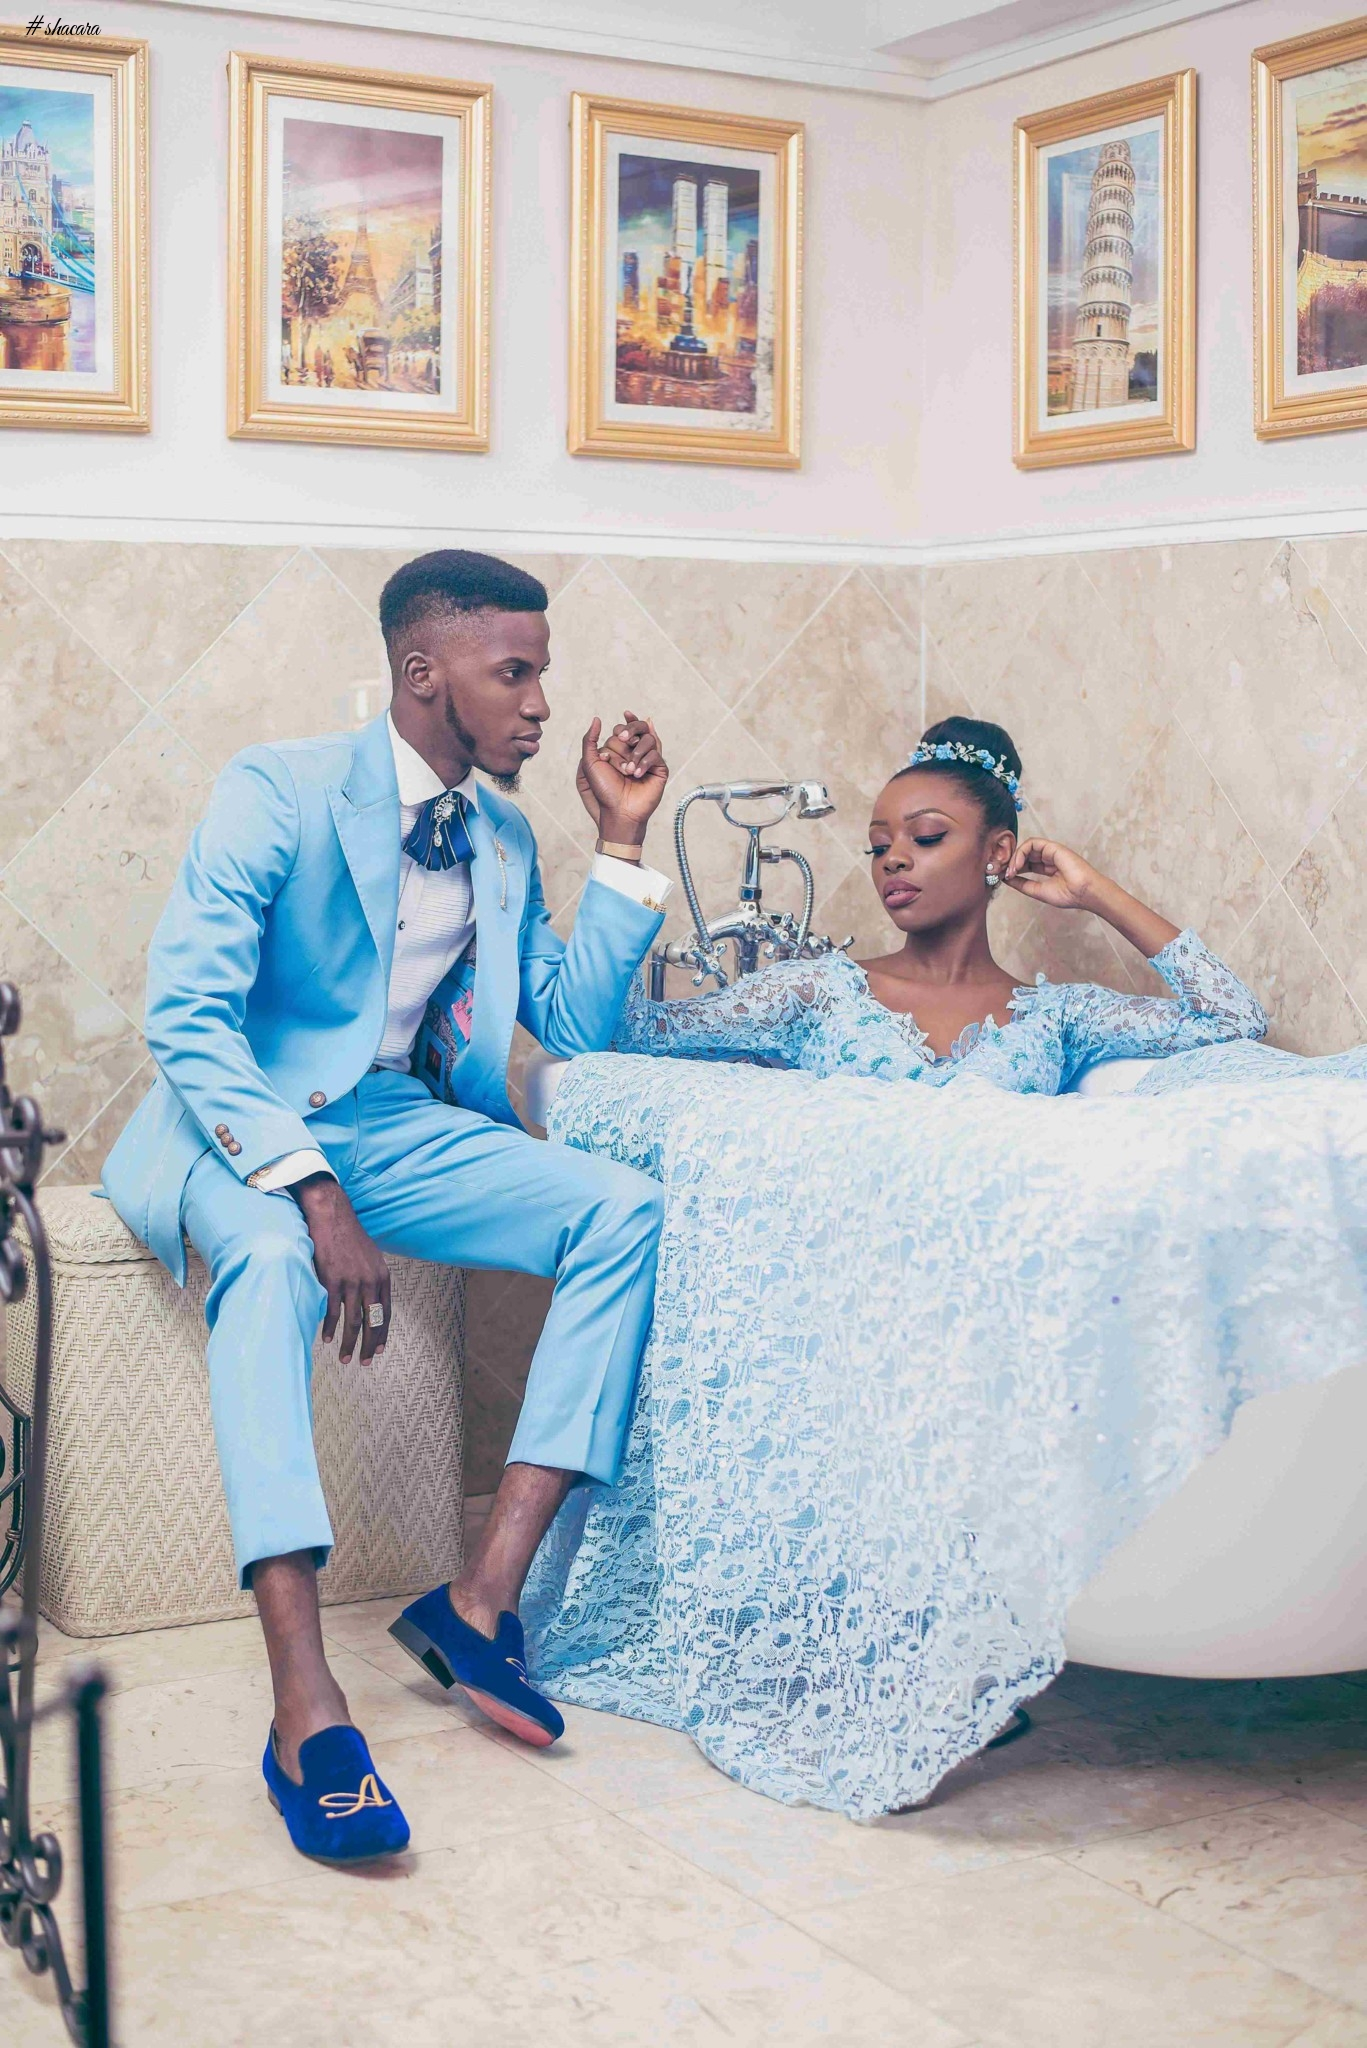 Akin Faminu & Tosin Sho-Silva Are Super Stylish In This Modern Wedding Fashion Editorial